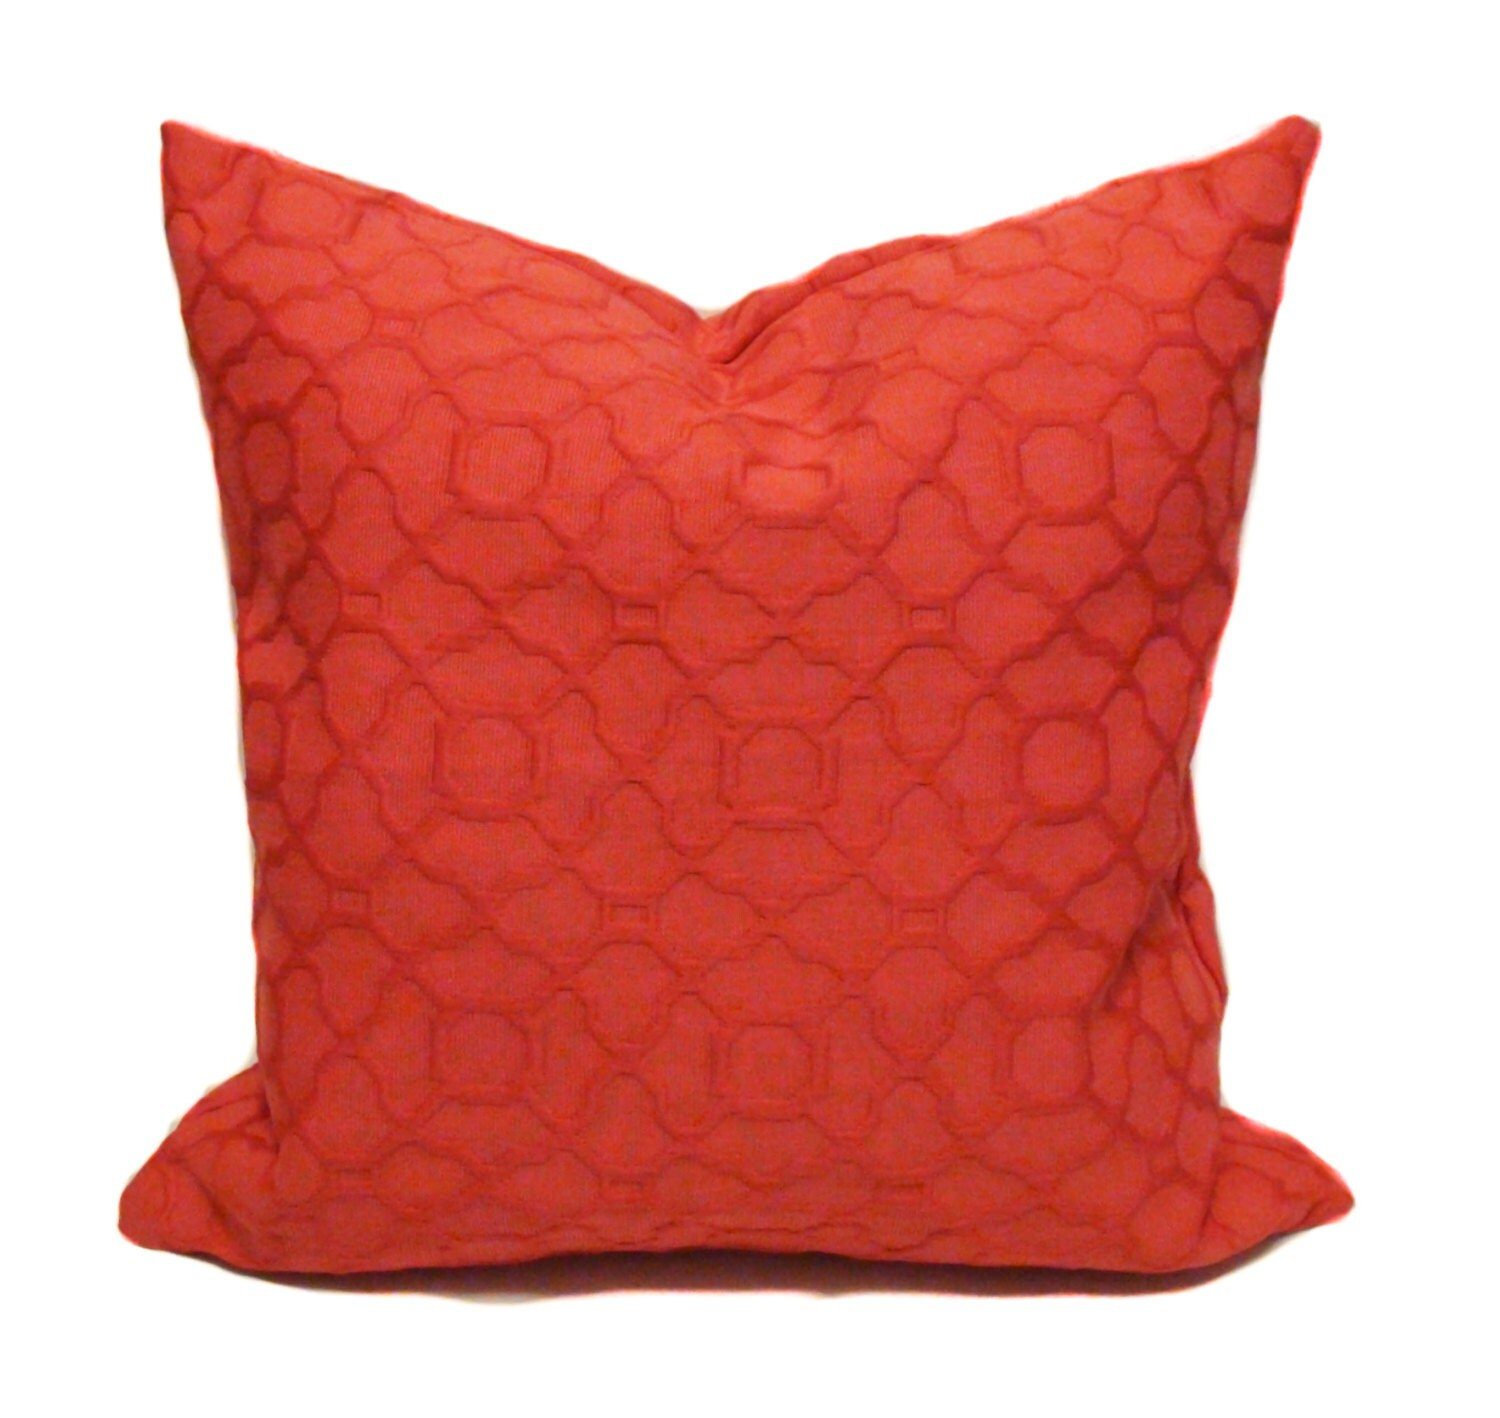 Throw Pillows With Orange : Orange throw pillows Pillow cover Sofa pillow by PillowCorner